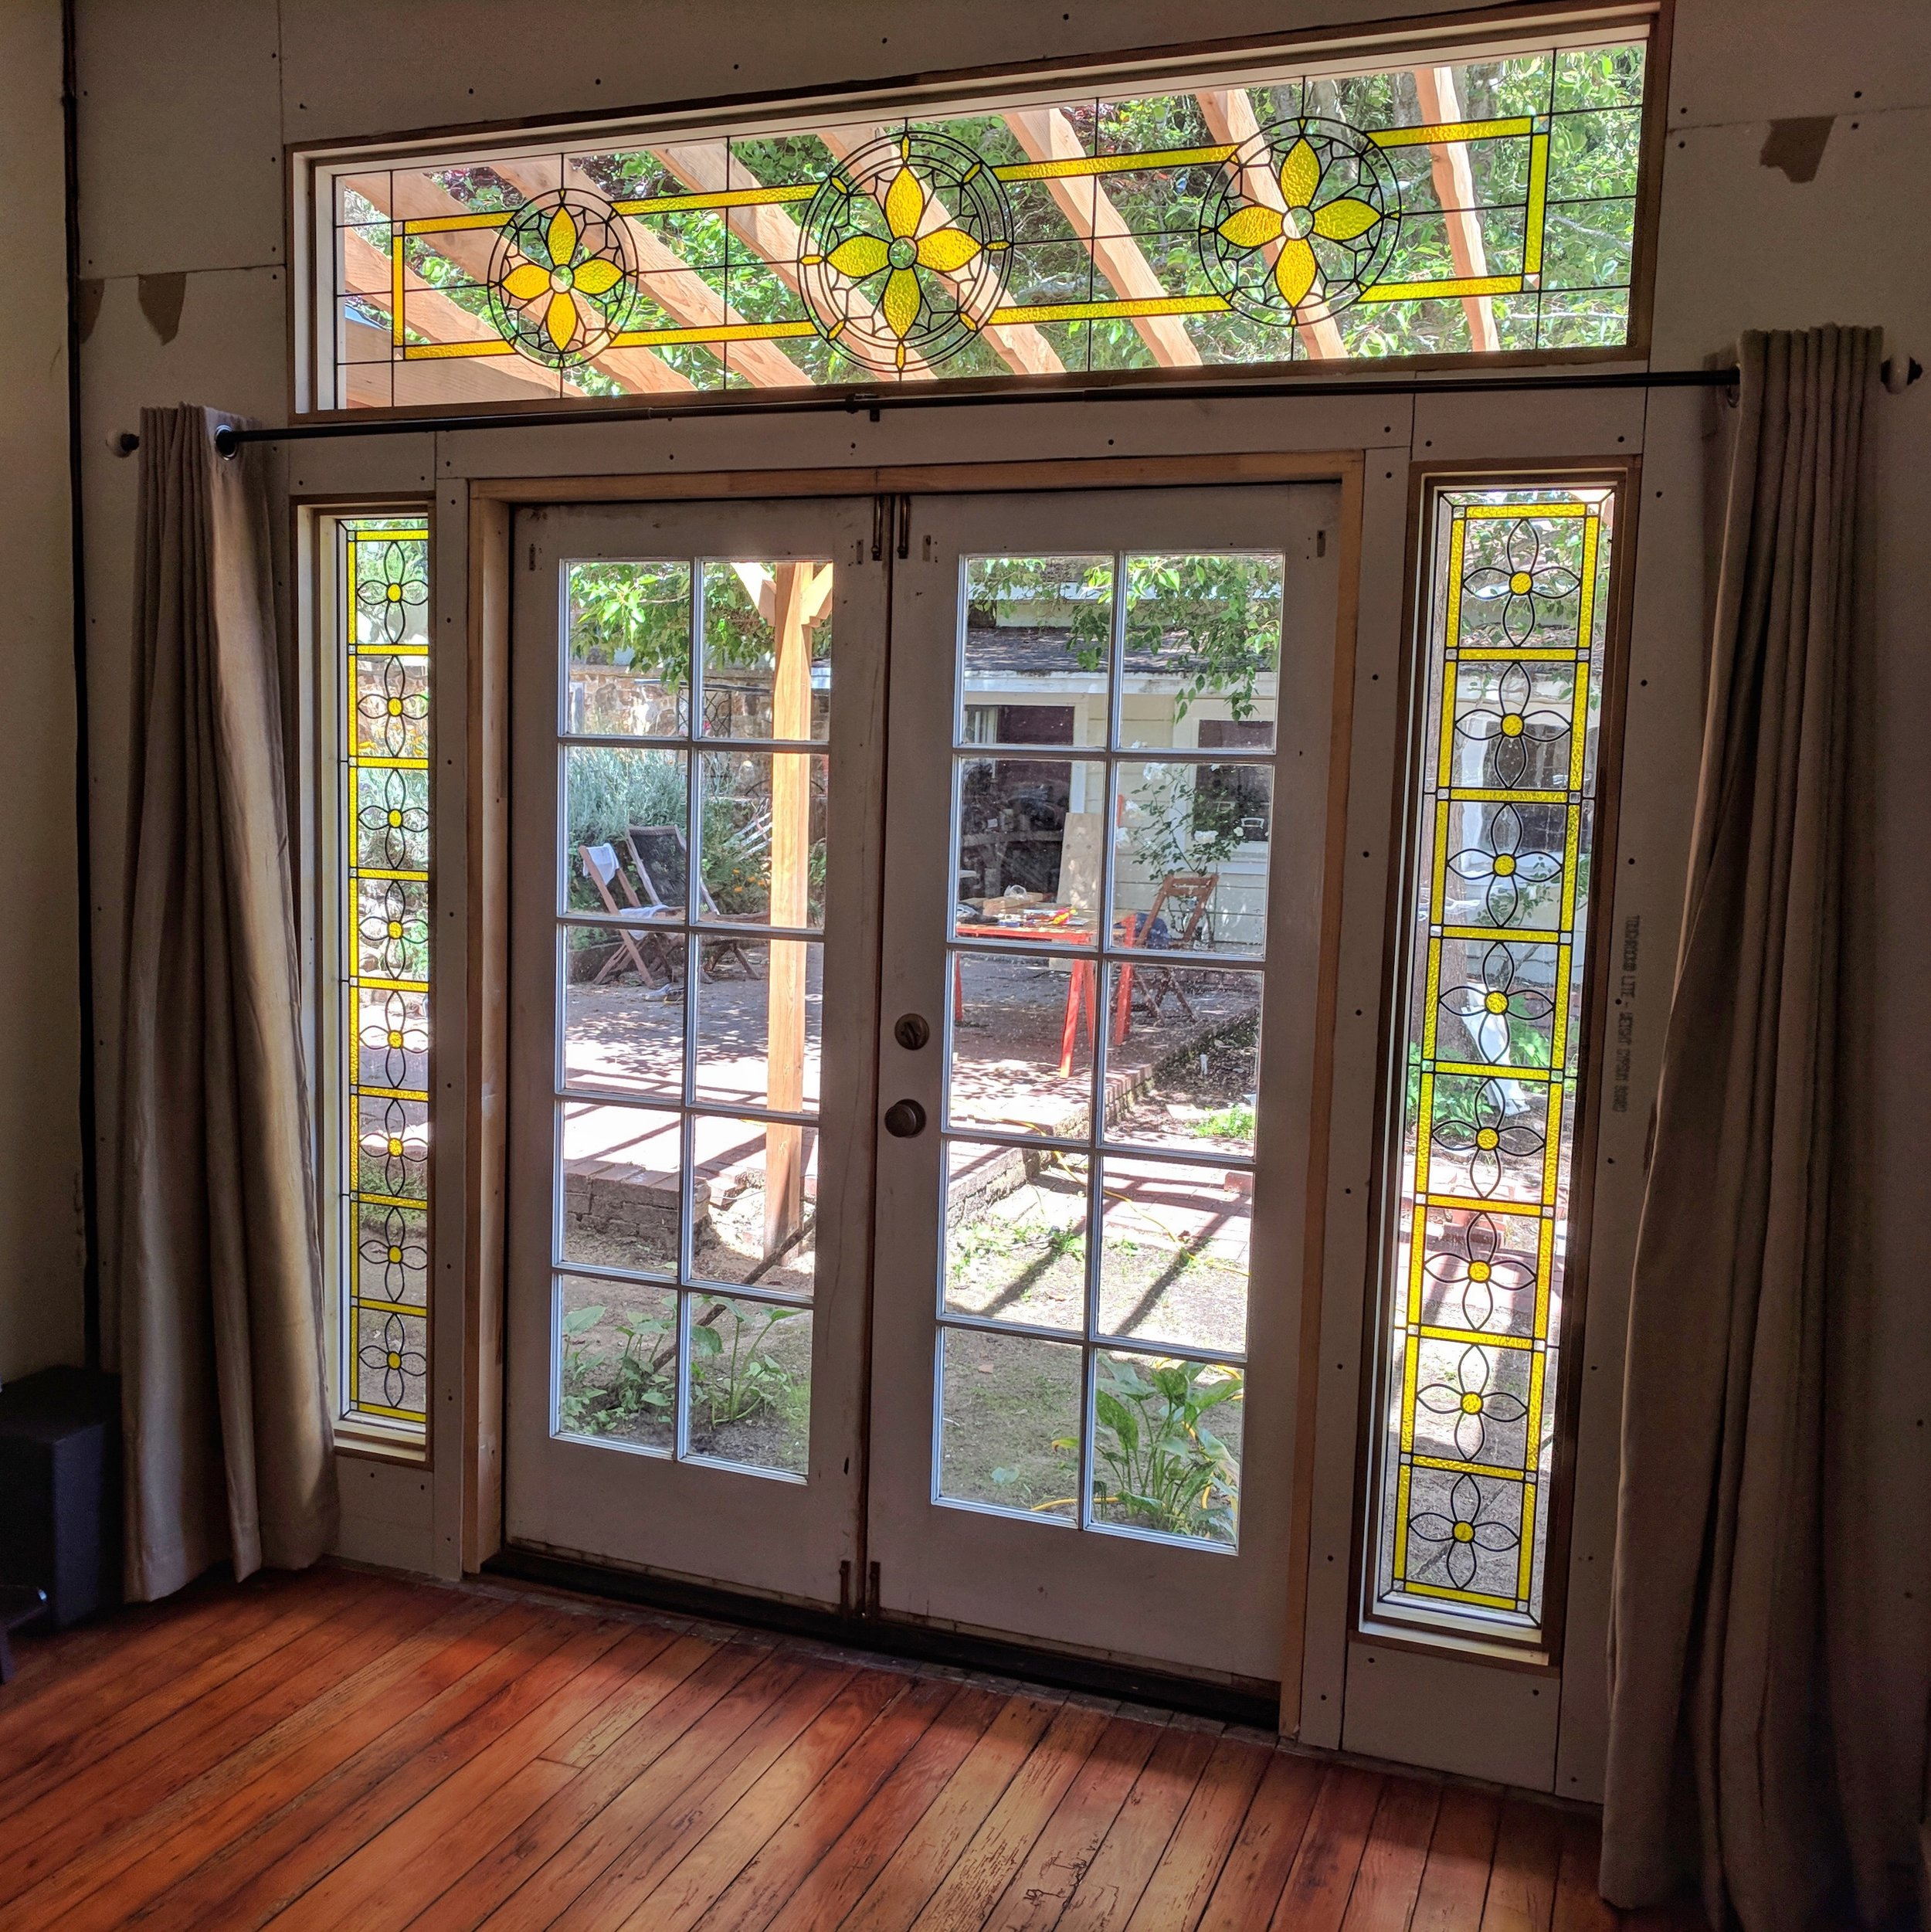 custom stained glass window leaded glass legacy glass studios medallion  bay area california custom design installed napa home.jpg